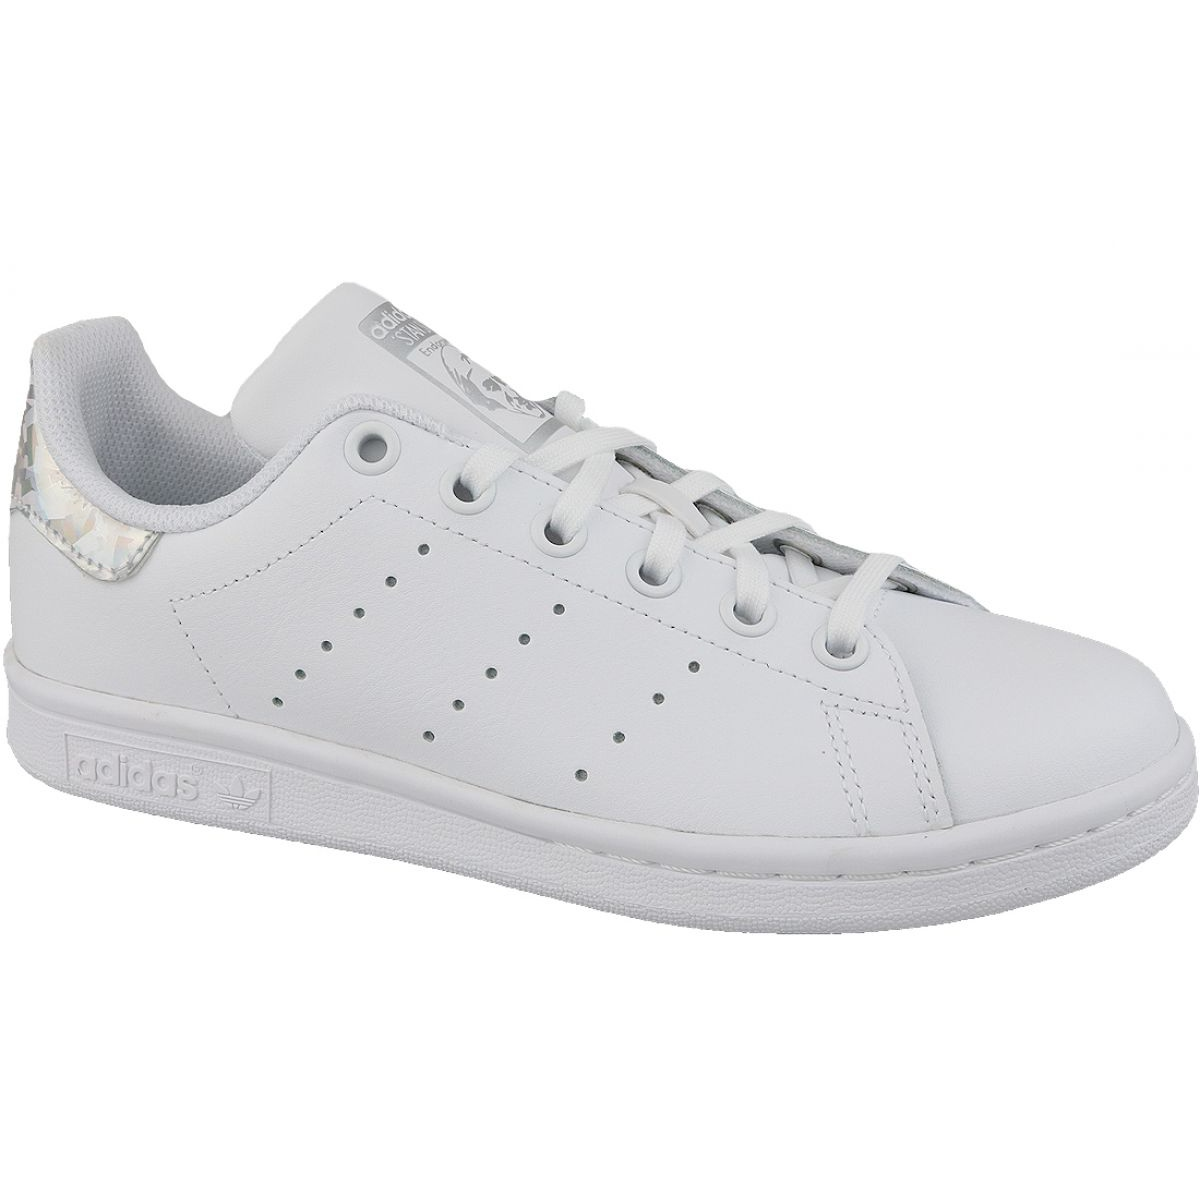 Adidas Stan Smith Jr EE8483 shoes white